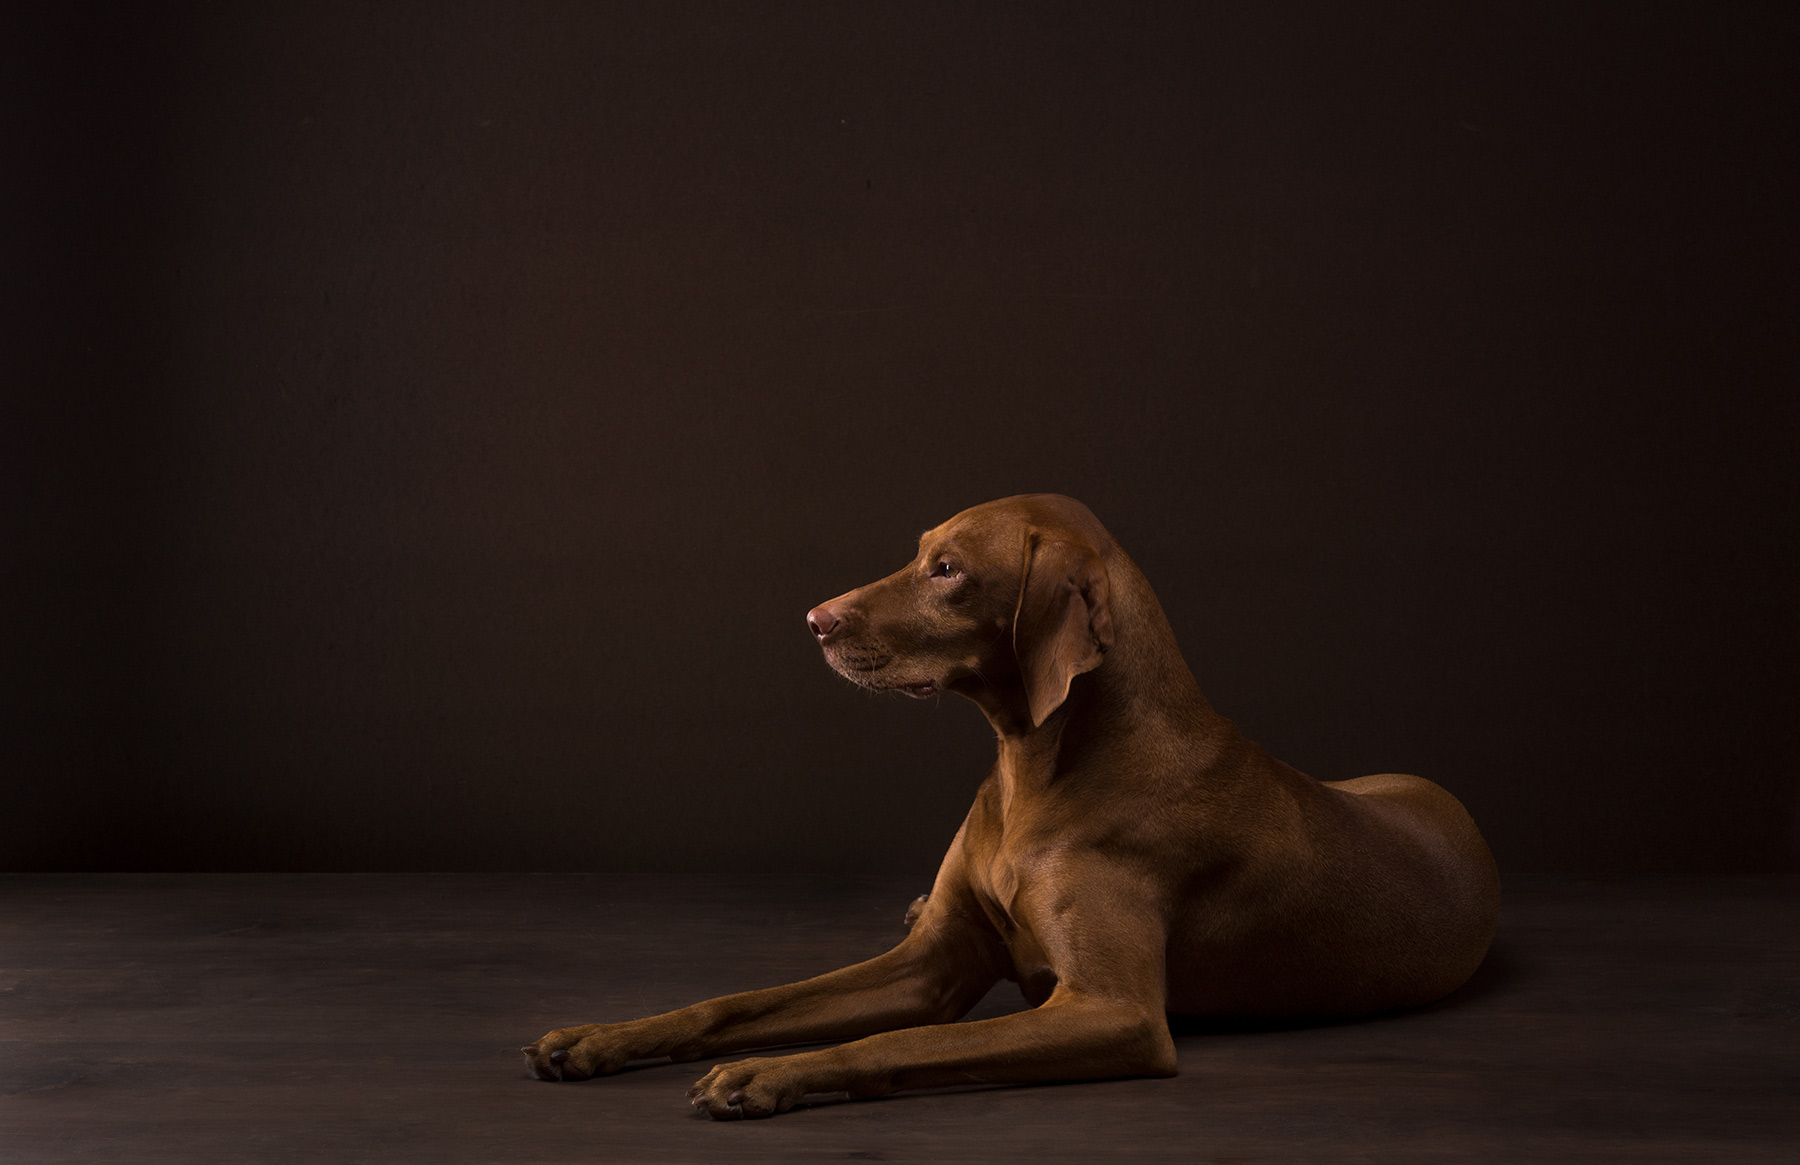 A-studio-portrait-of-a-Vizsla-dog-against-a-black-background